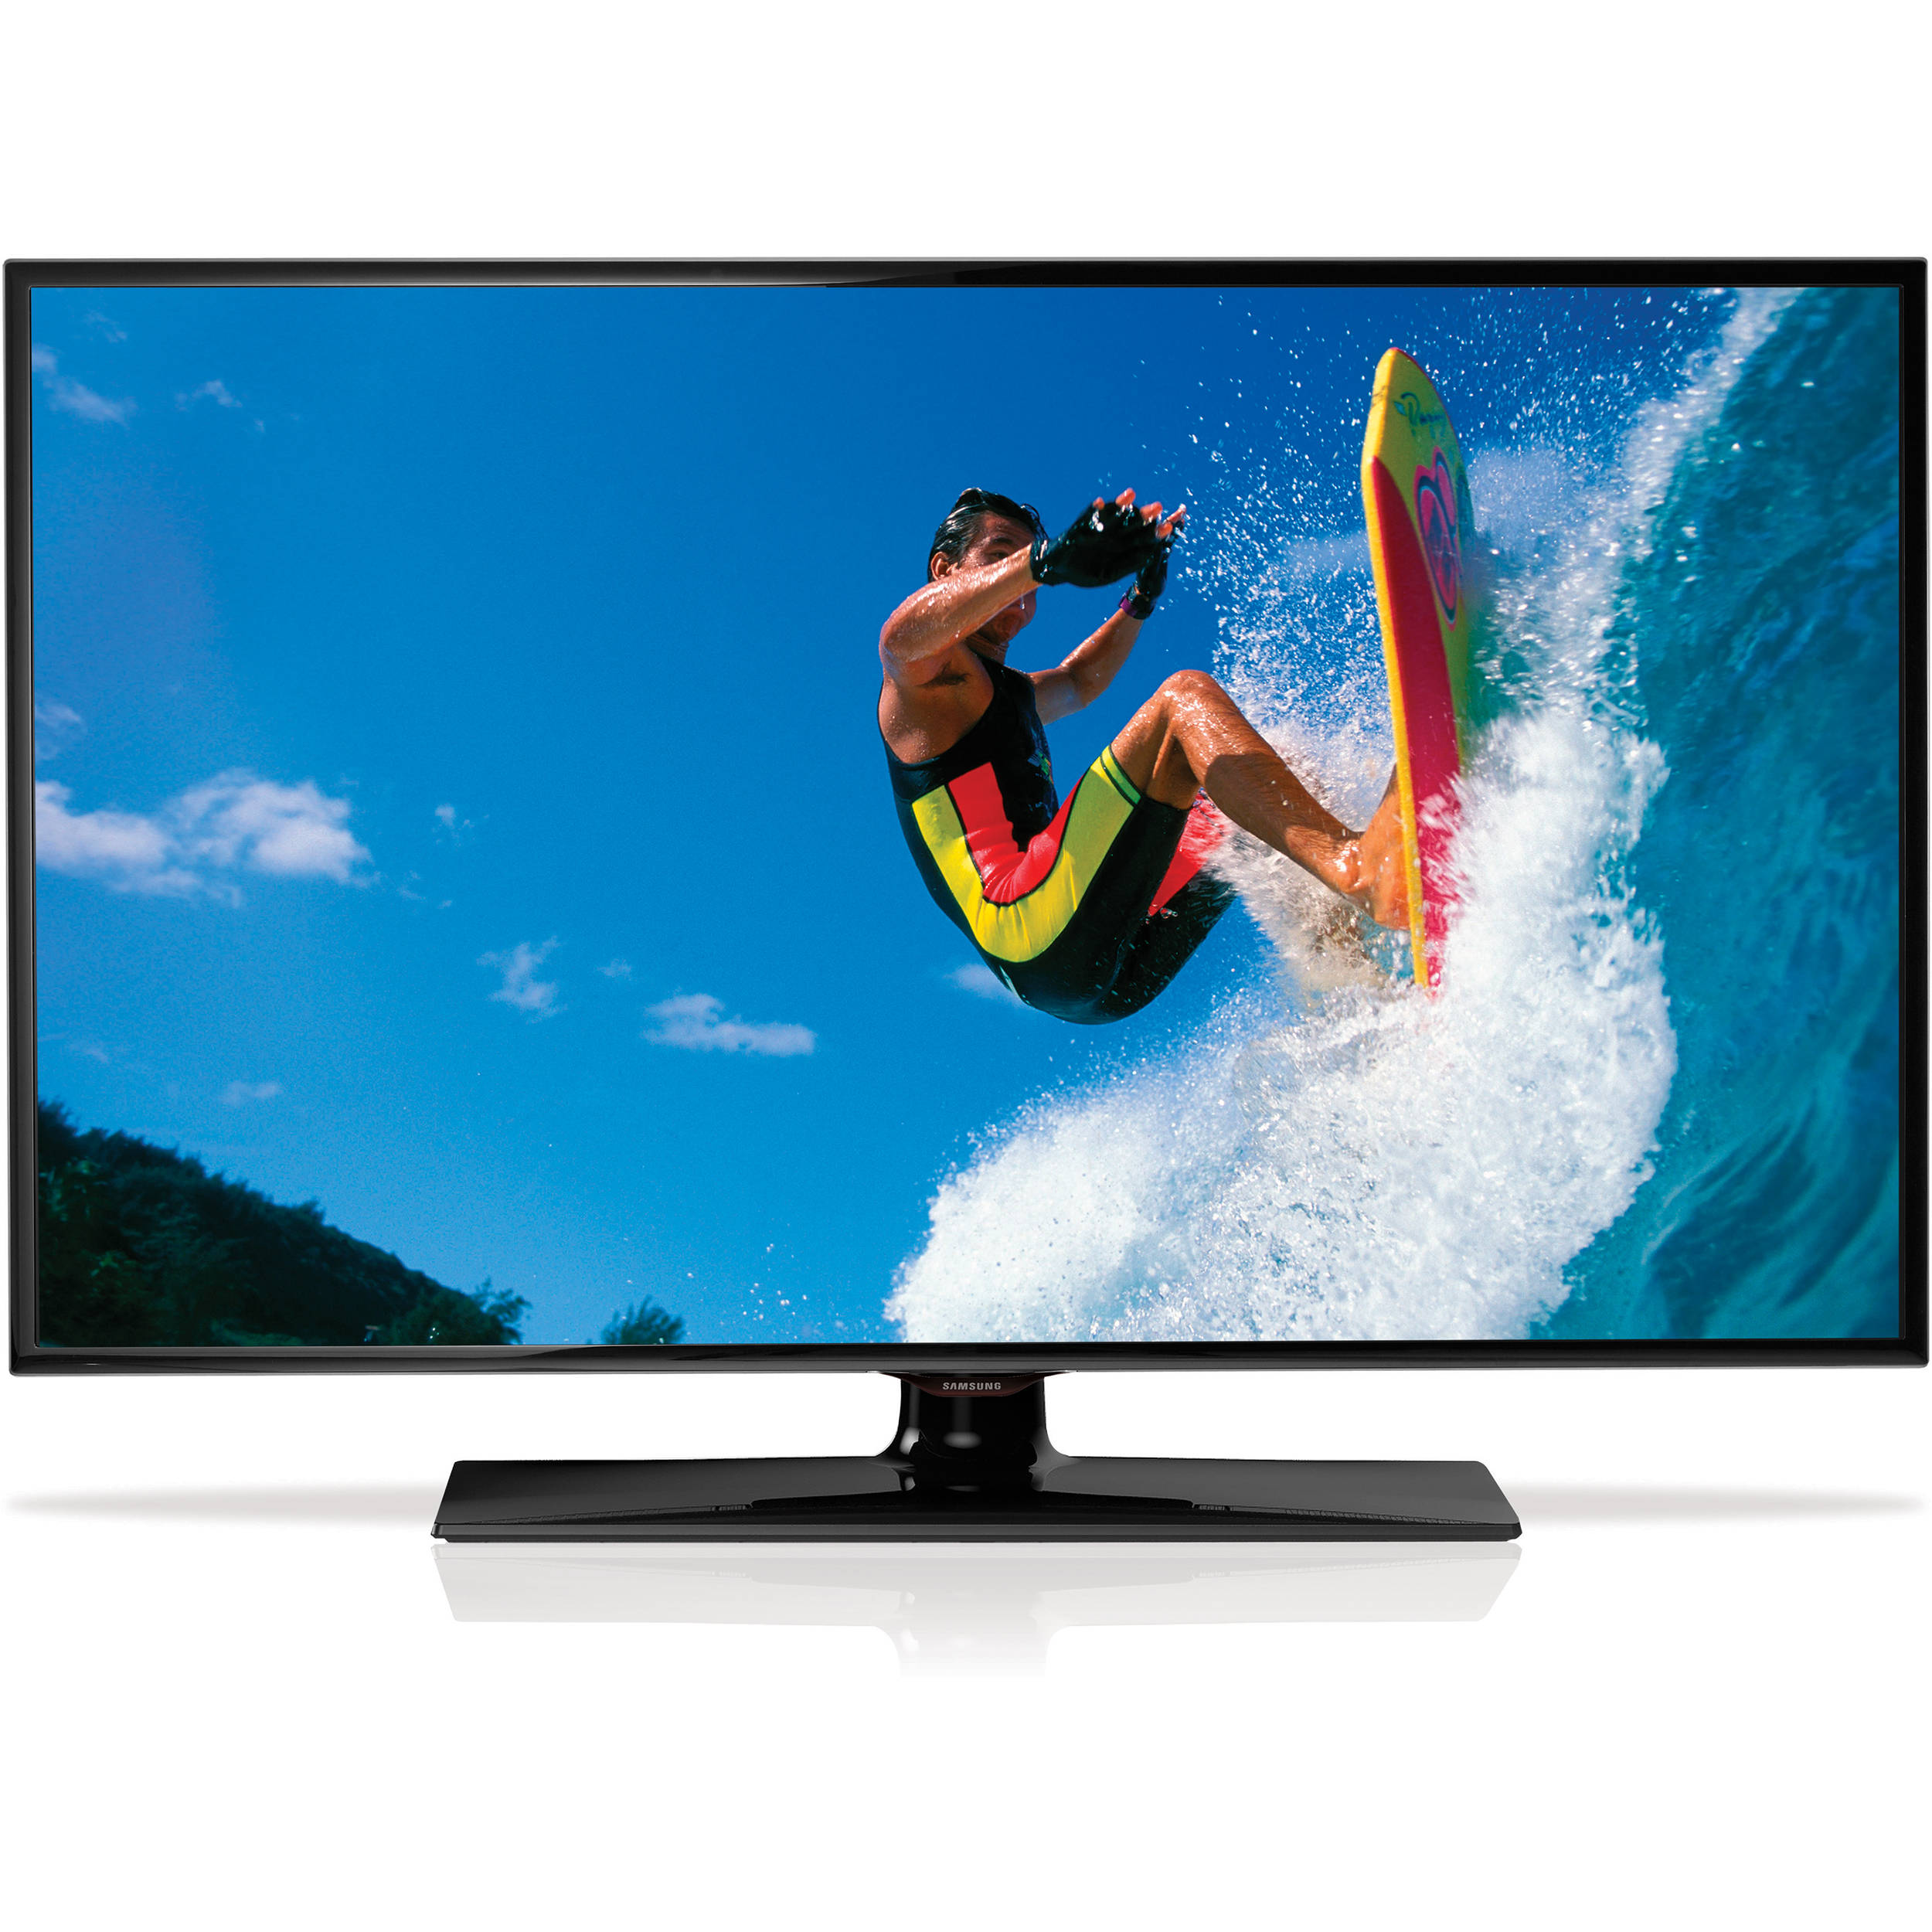 Buy Samsung 4040k5000 Led Tv Online In India At Lowest Prices